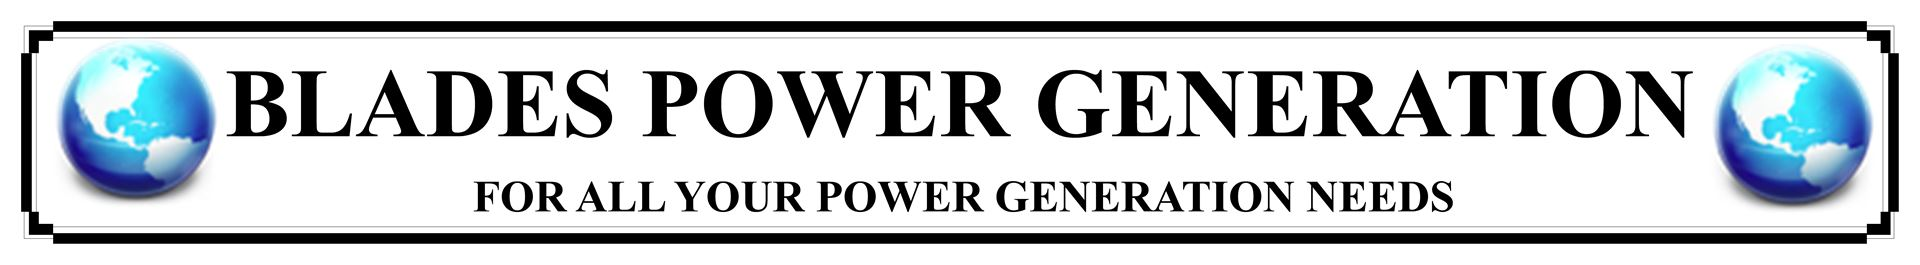 Blades Power Generation Ltd